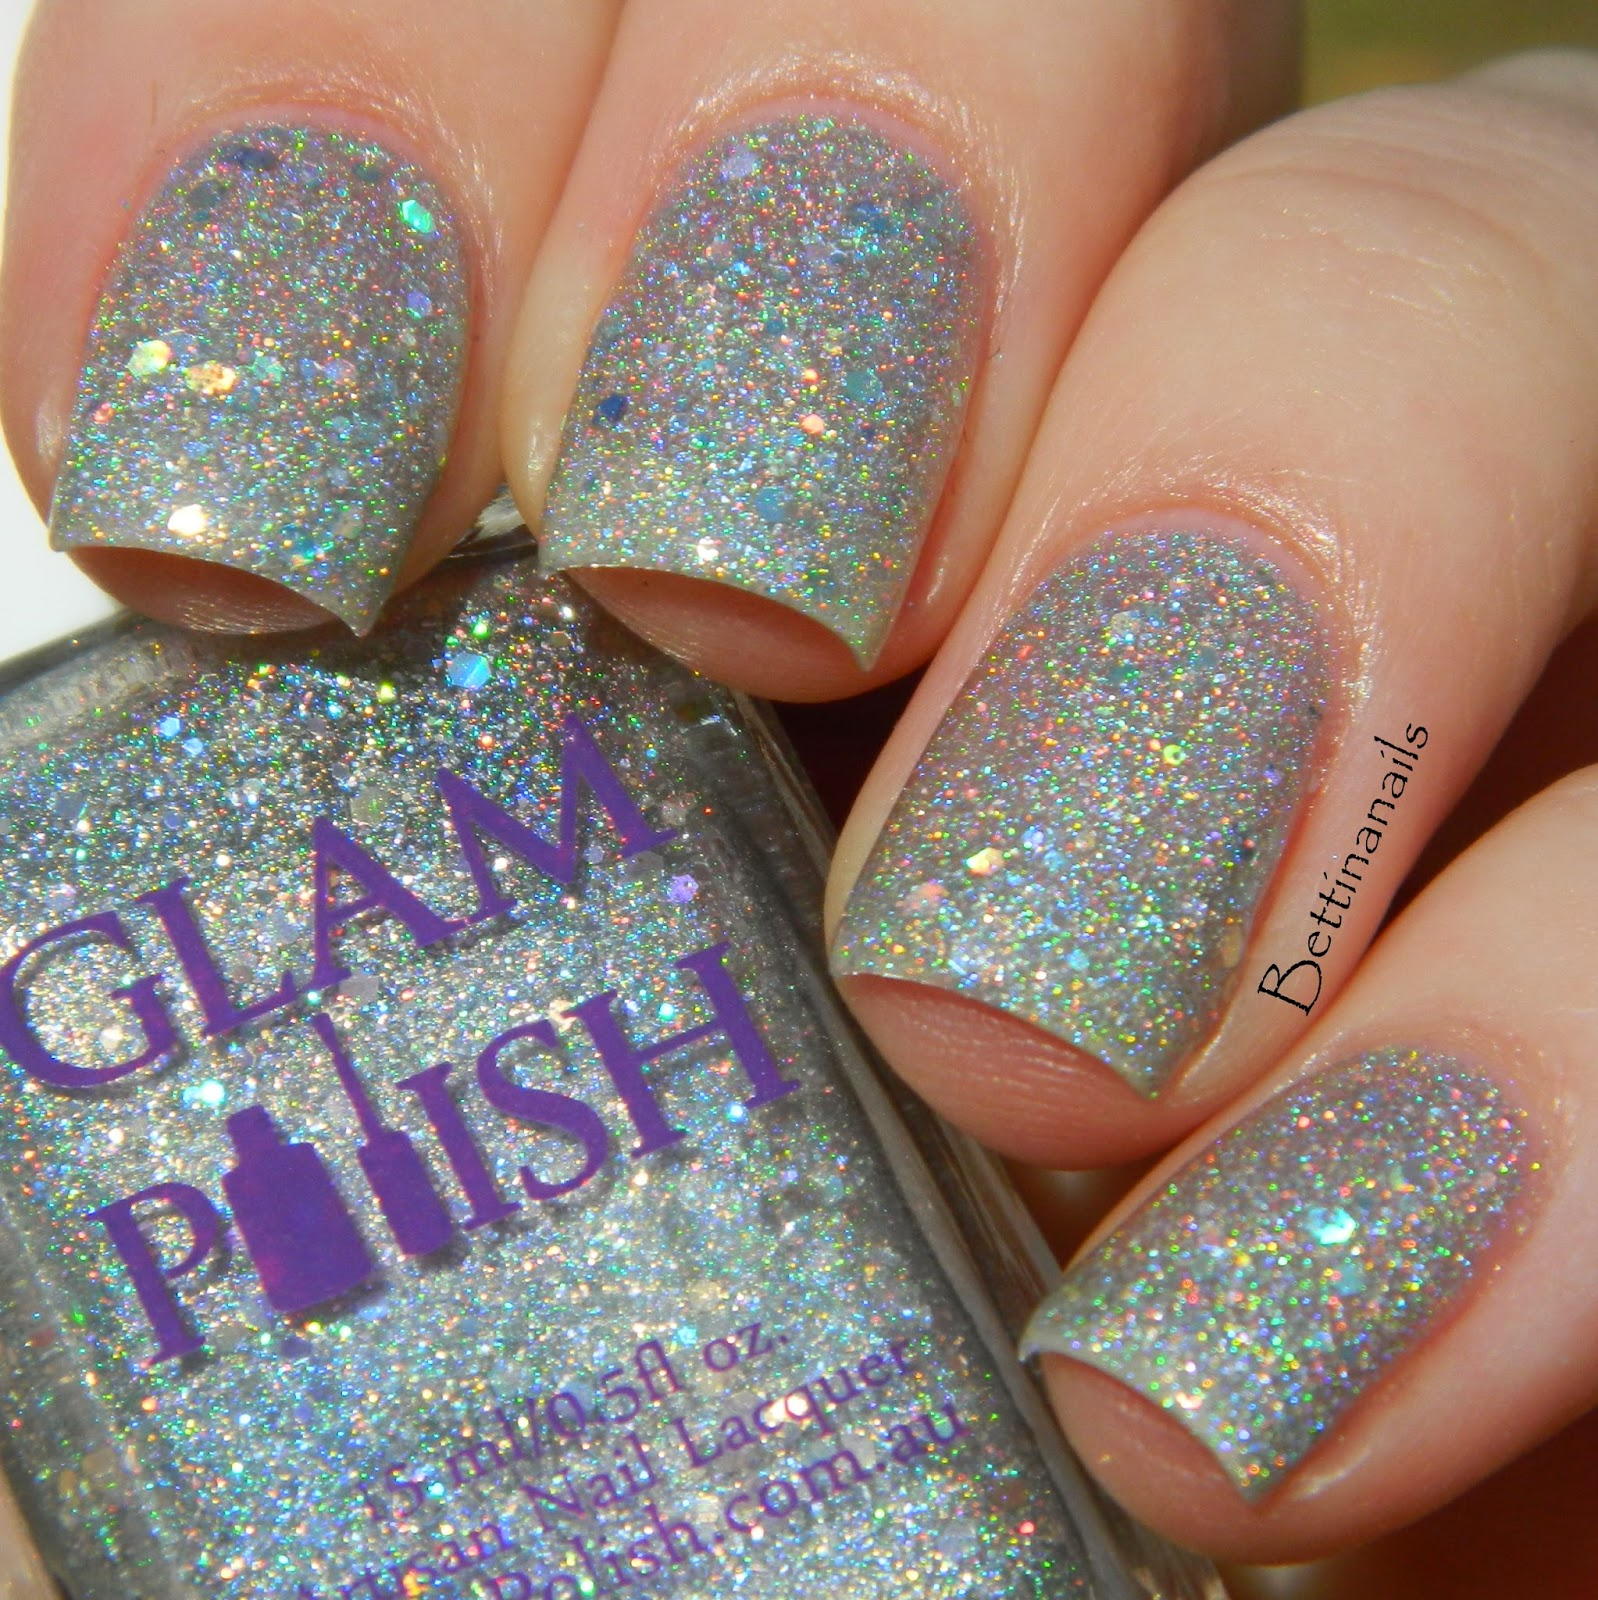 Bettina Nails: Cast A Spell Part 2: The Magic Continues by Glam Polish